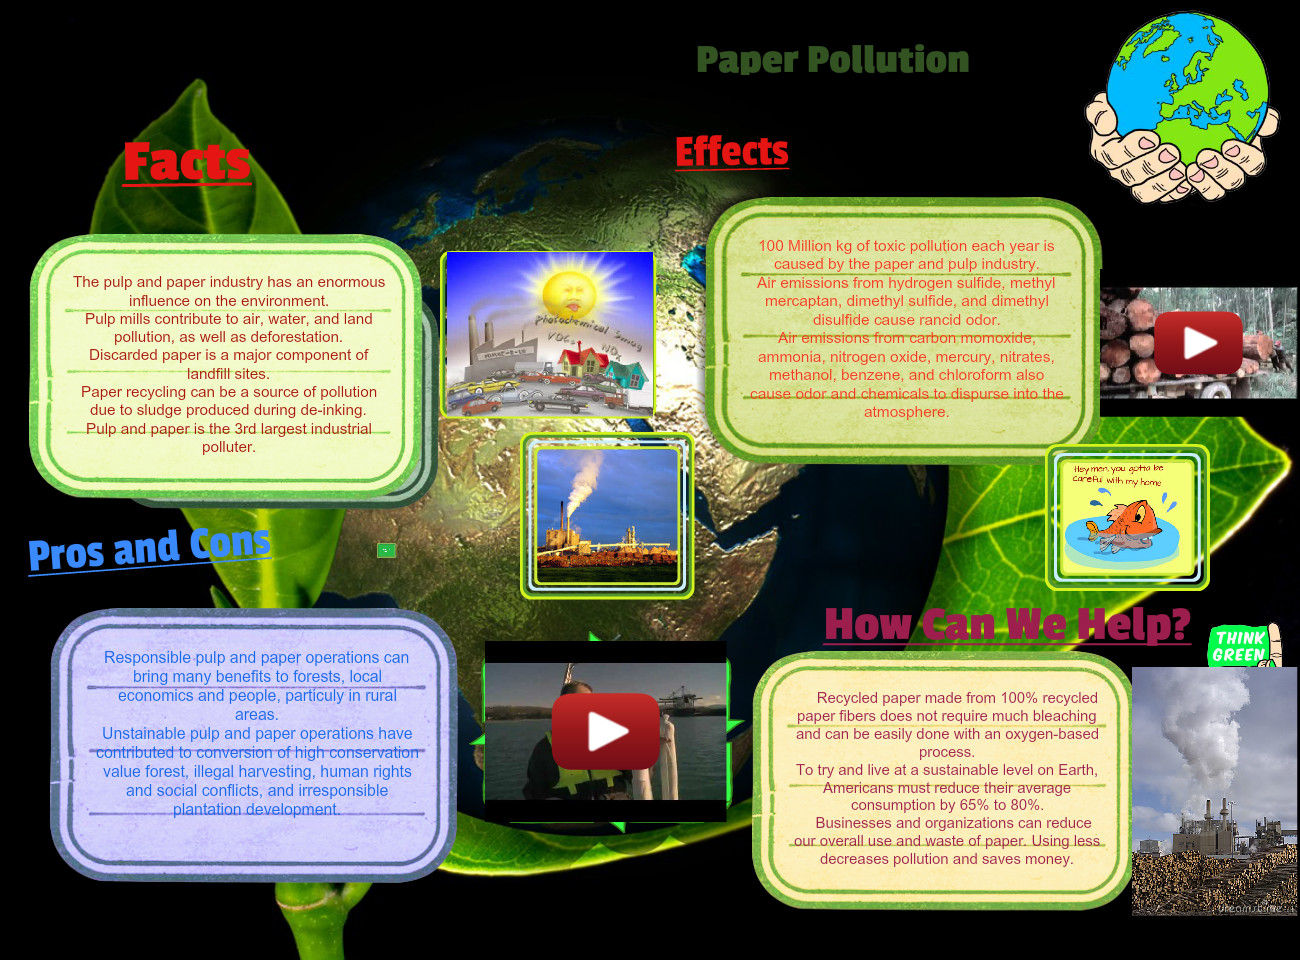 Paper pollution